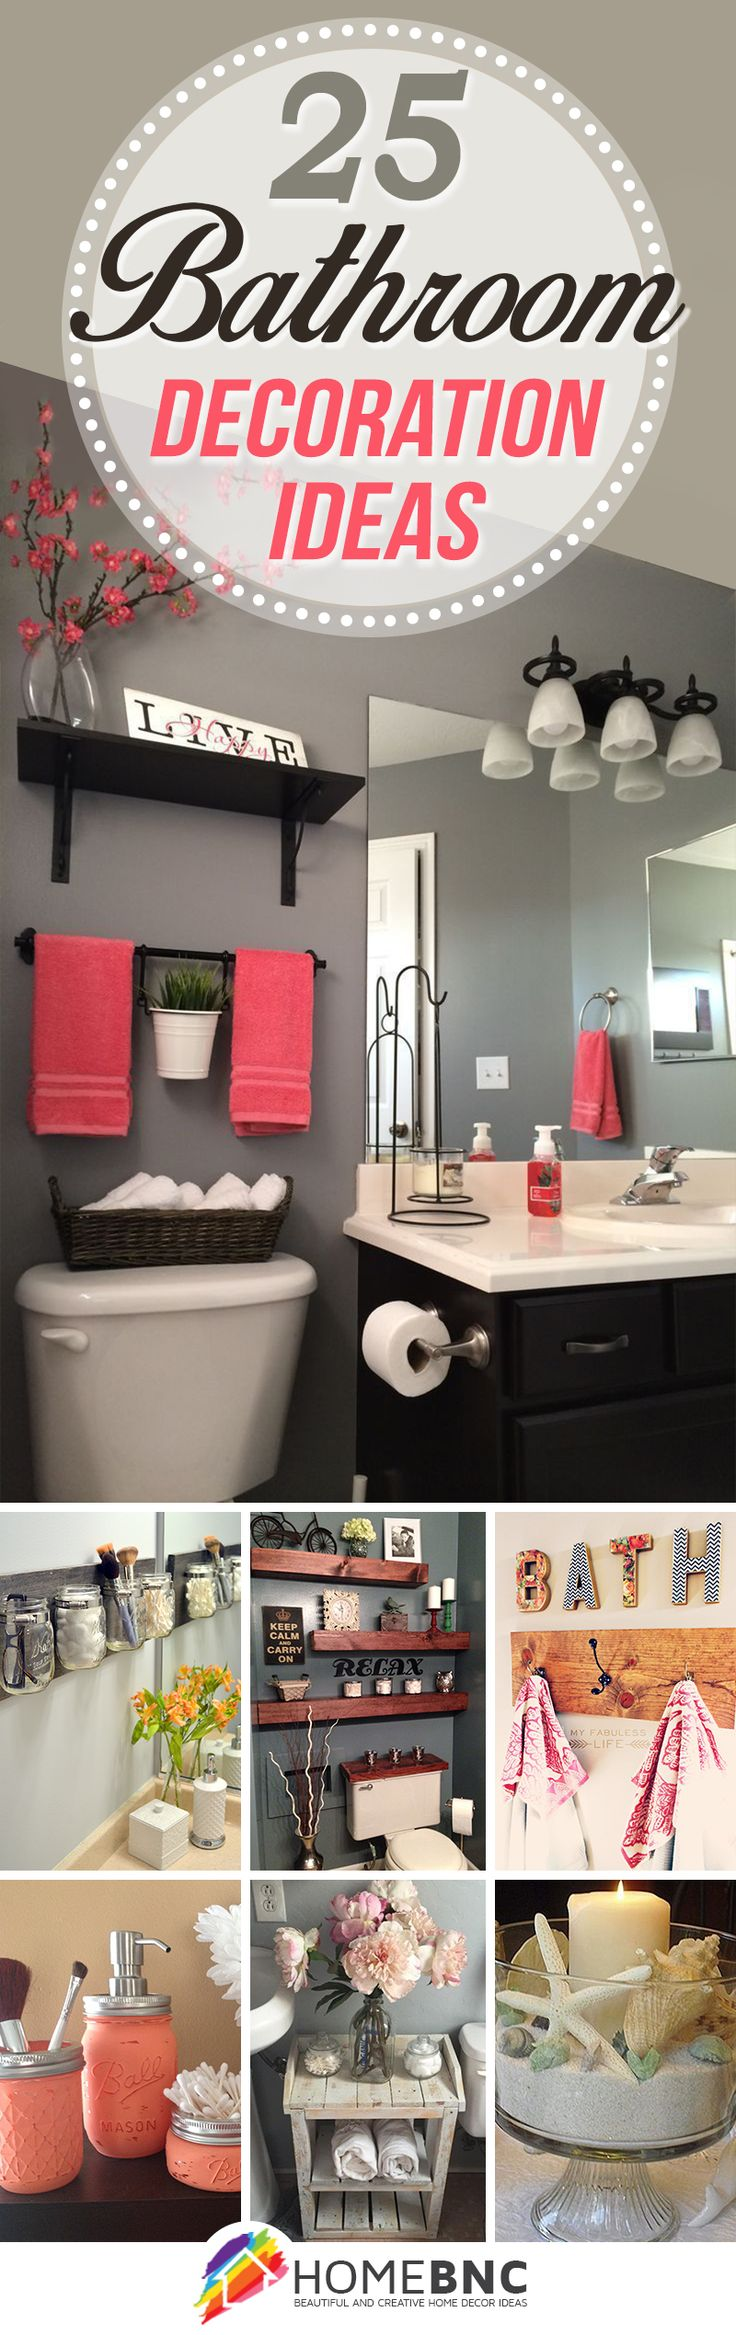 best 25+ black bathroom decor ideas on pinterest | bathroom wall